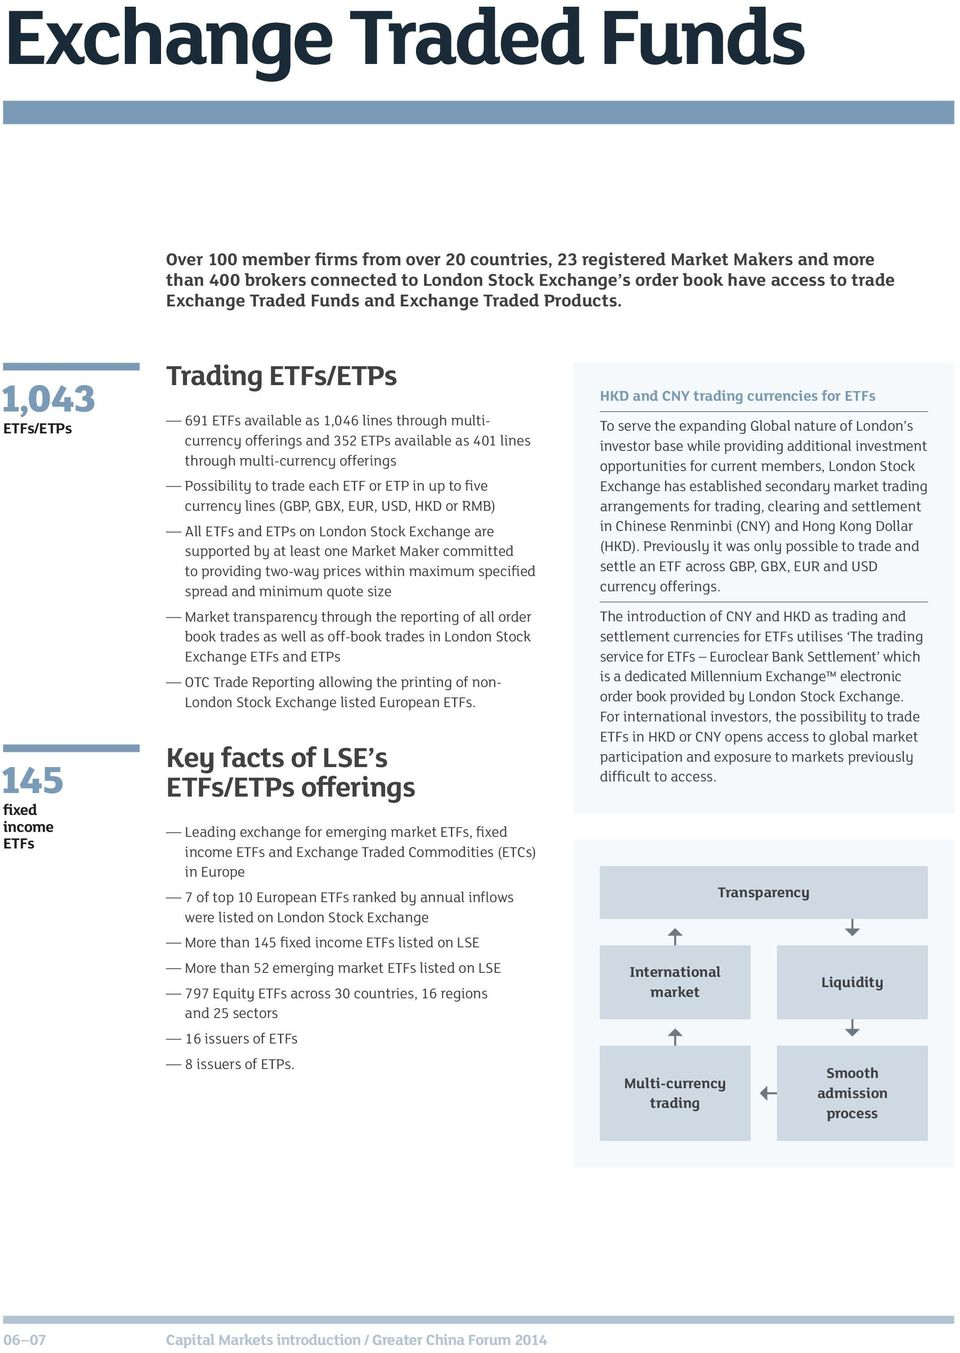 1,043 ETFs/ETPs 145 fixed income ETFs Trading ETFs/ETPs 691 ETFs available as 1,046 lines through multicurrency offerings and 352 ETPs available as 401 lines through multi-currency offerings